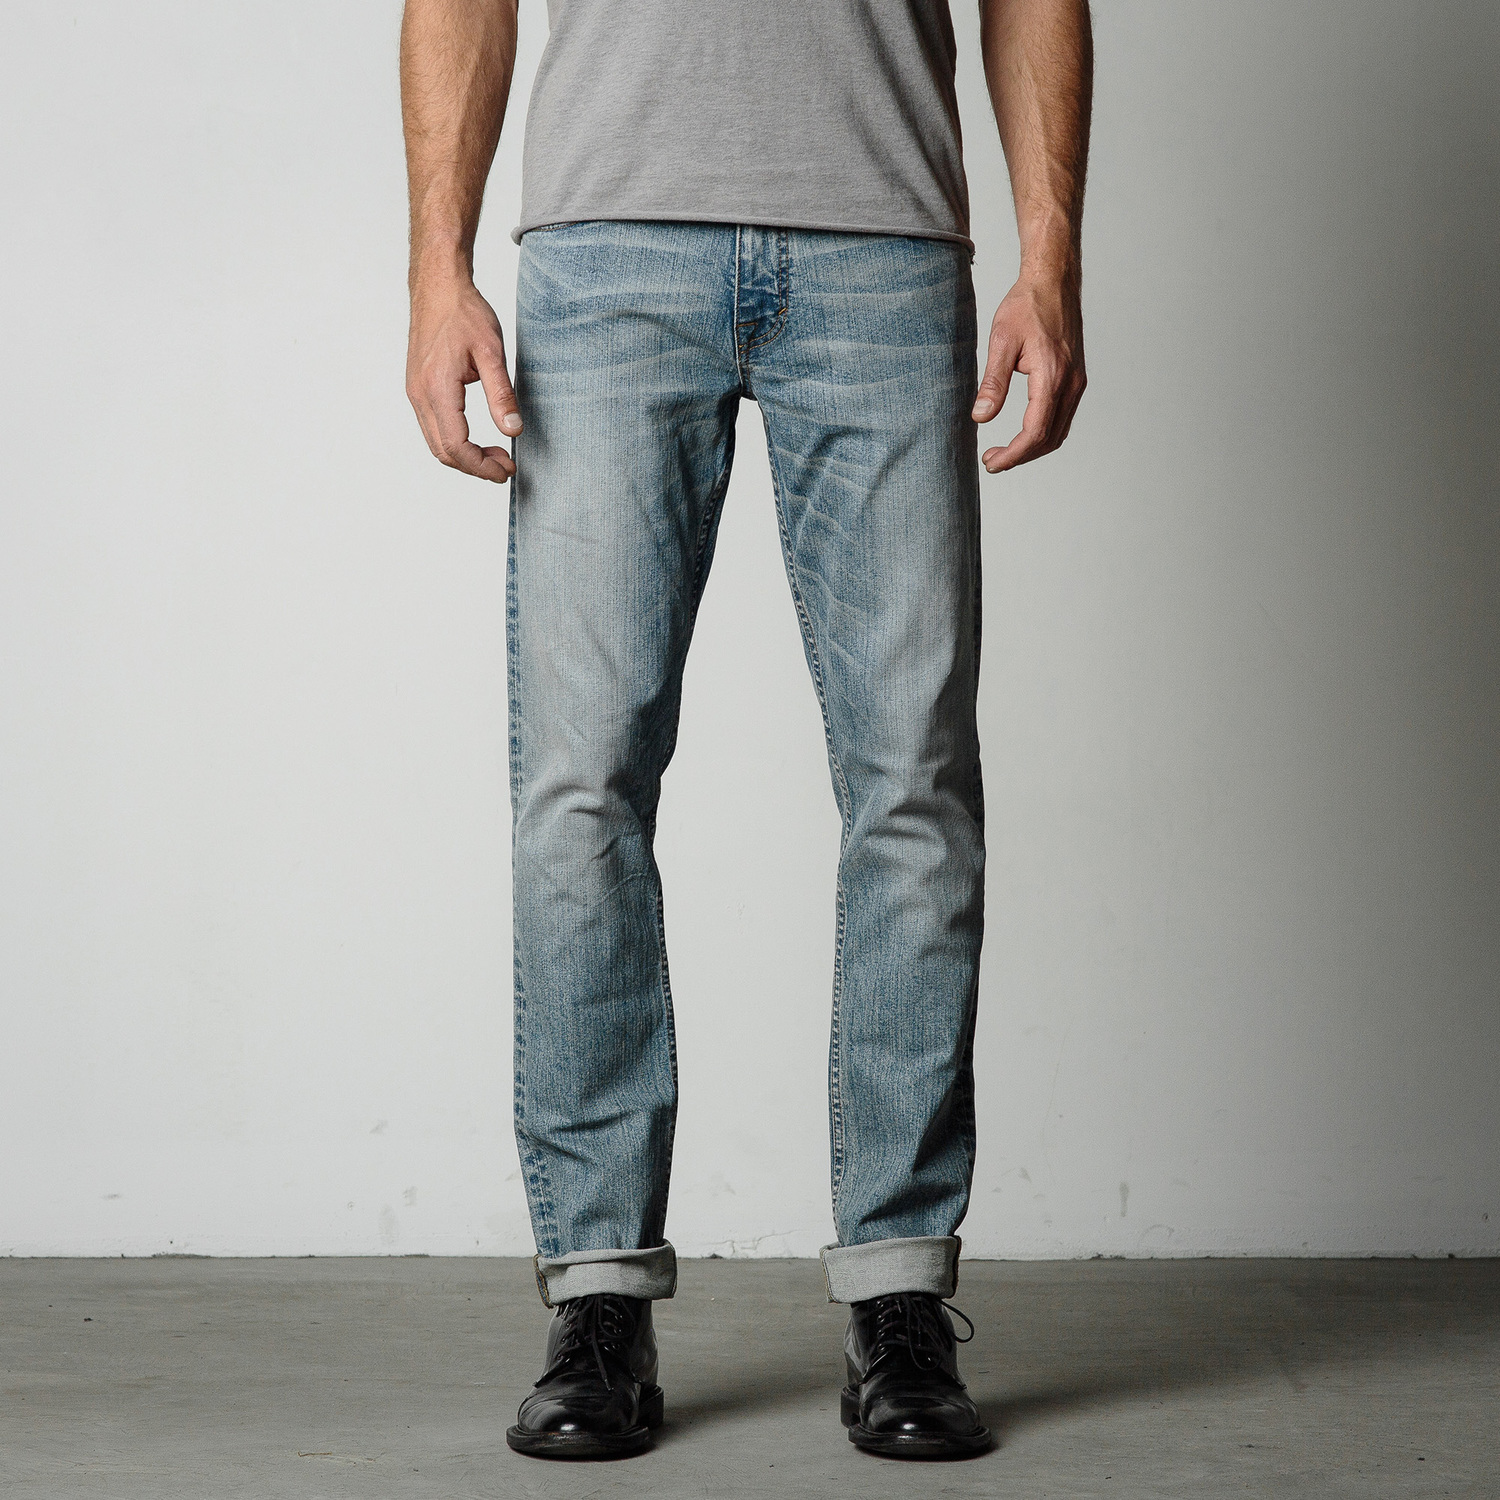 Mens Slim Jeans In Light Wash $95 | DSTLD